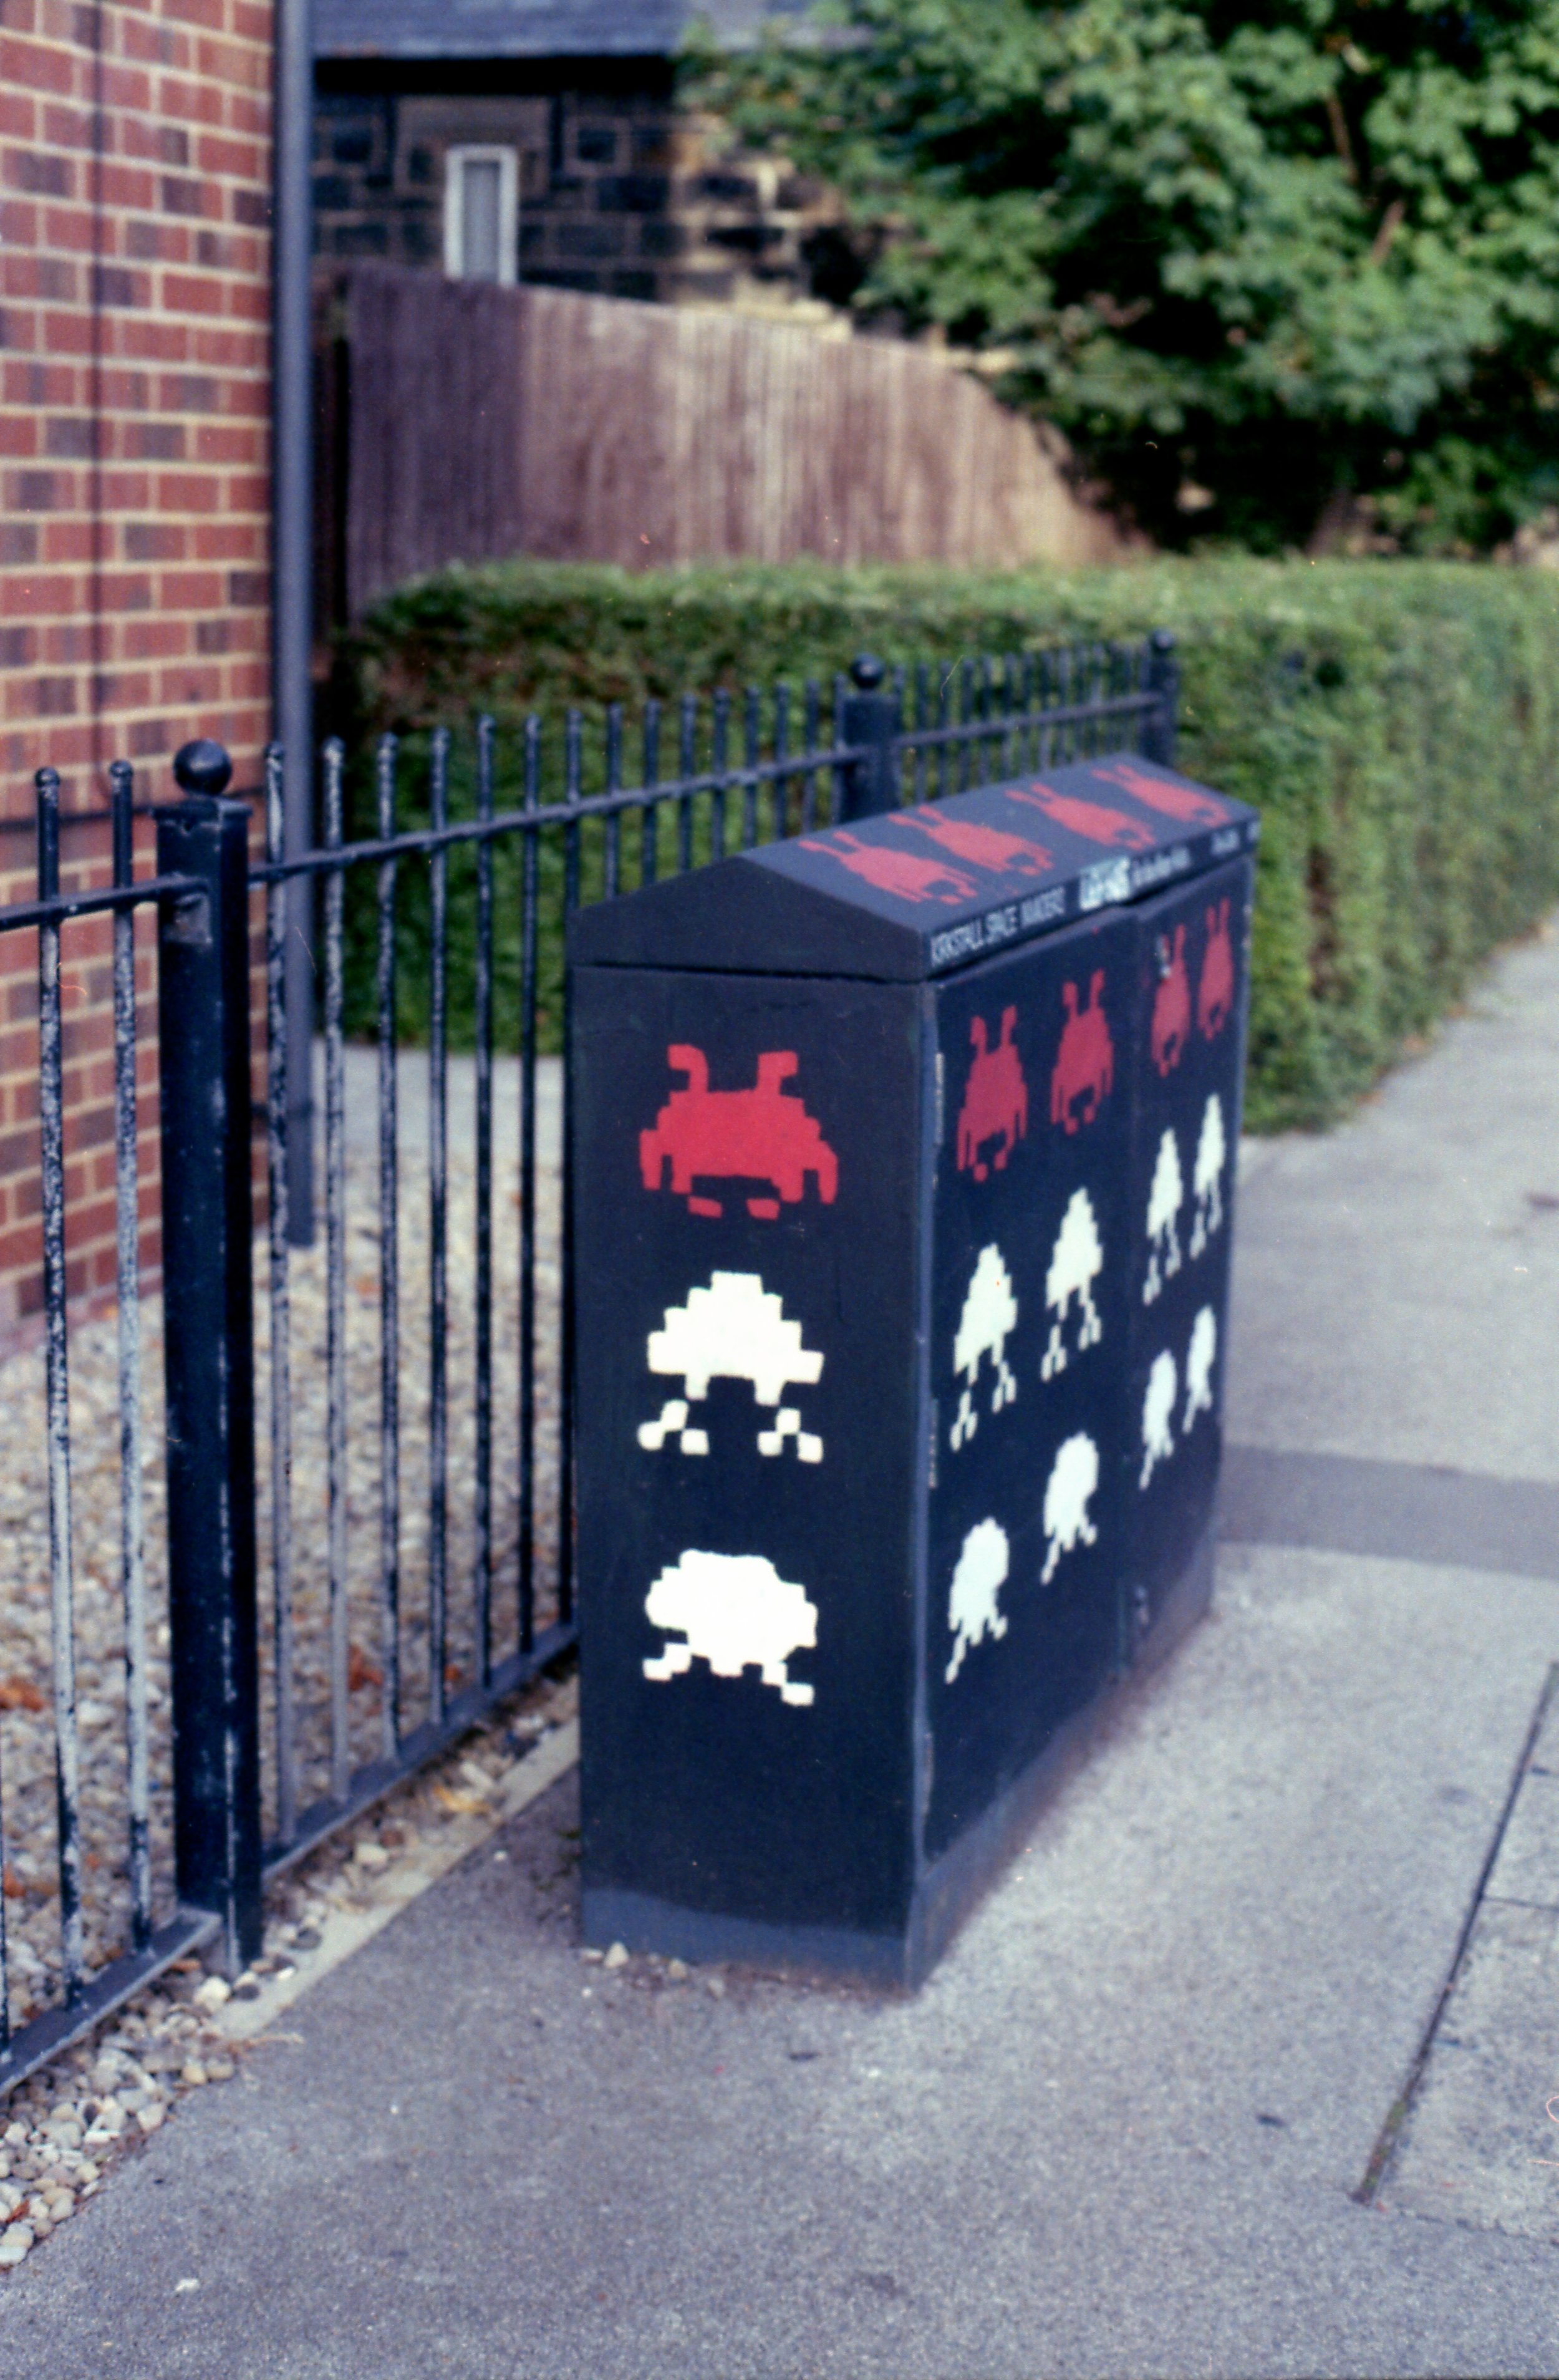 267/366 - I've spotted this a few times and not had my camera with me, so its exciting to finally get a picture. And who doesn't love random space invaders... reminds me of the ones we randomly saw around Paris.